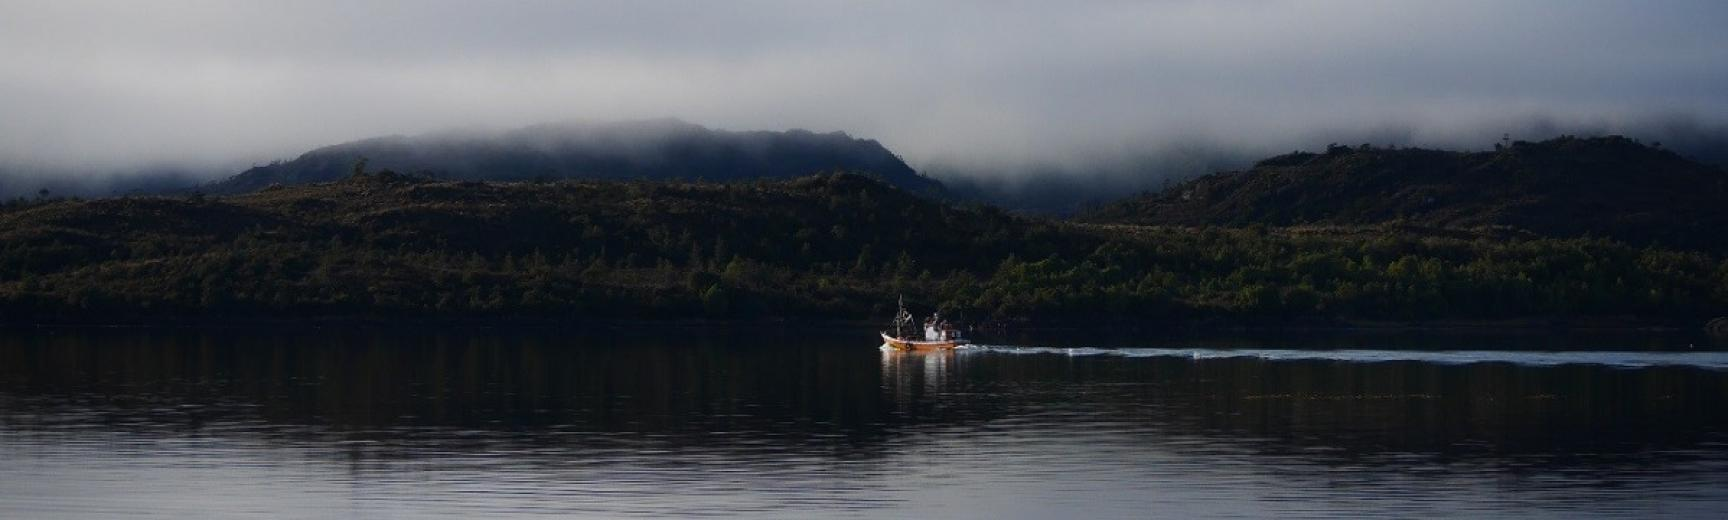 people in a boat on a river in Chile with mountains in the background